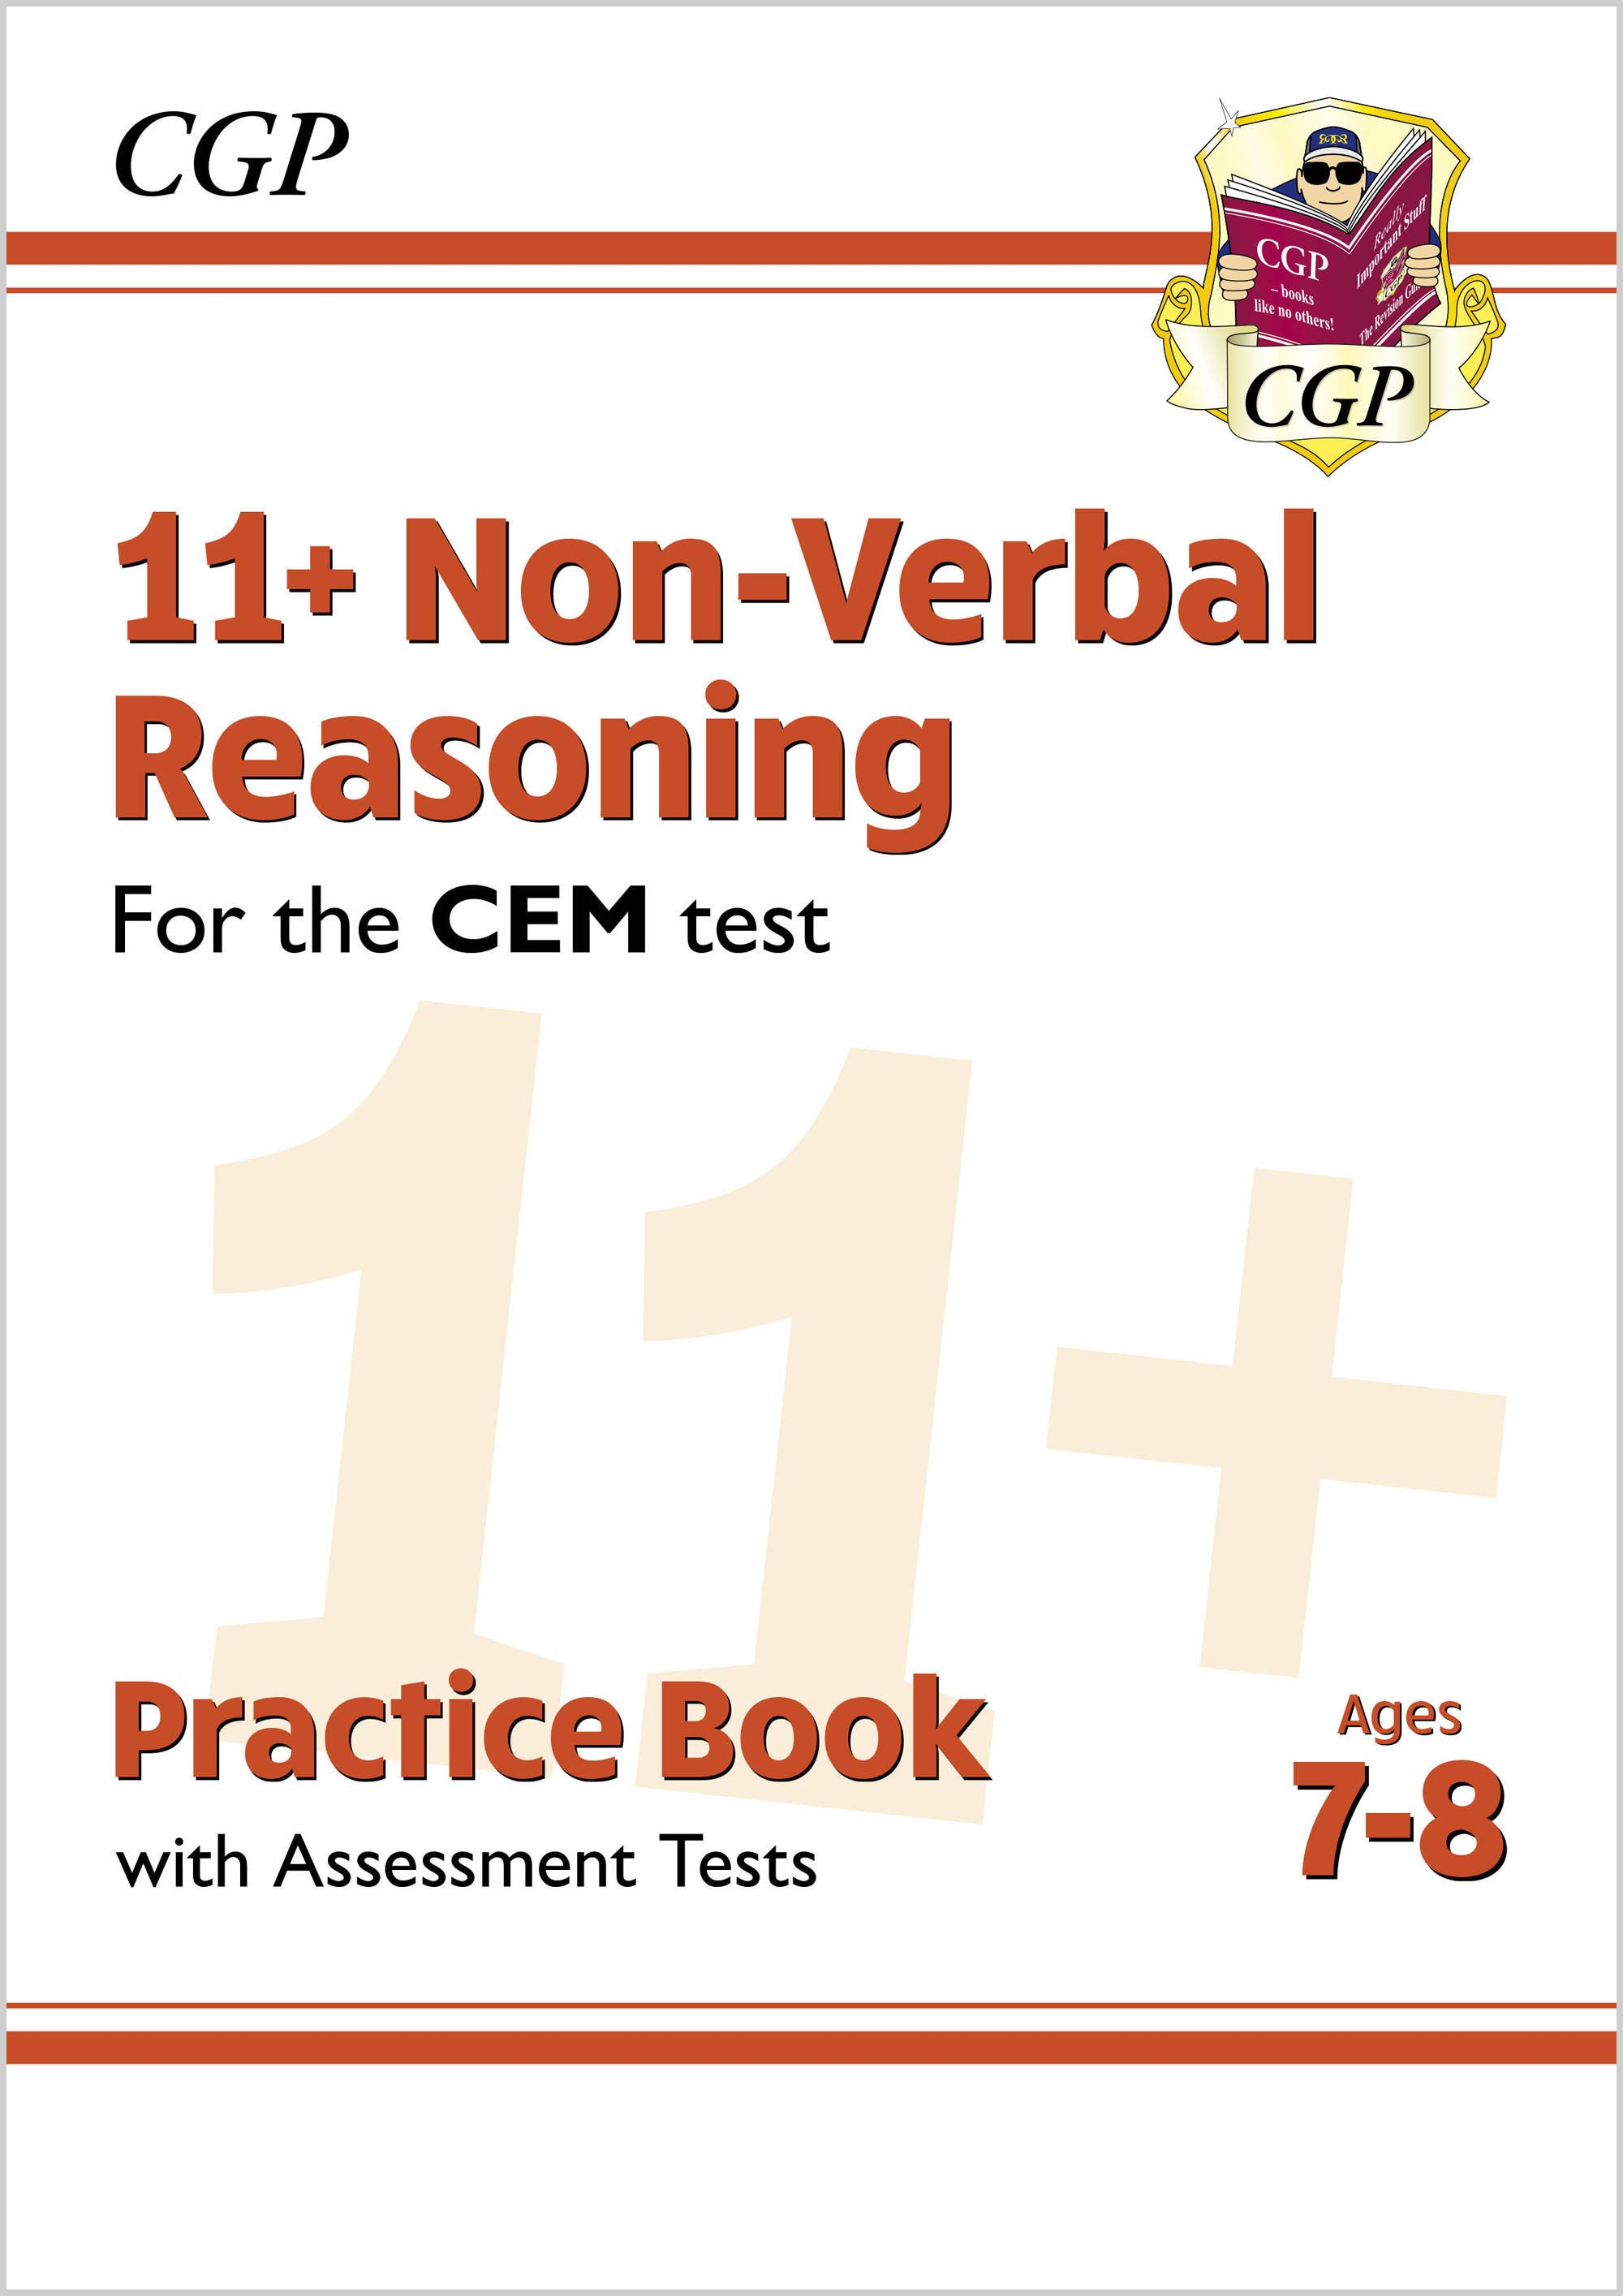 N3QDE2DK - New 11+ CEM Non-Verbal Reasoning Practice Book & Assessment Tests - Ages 7-8